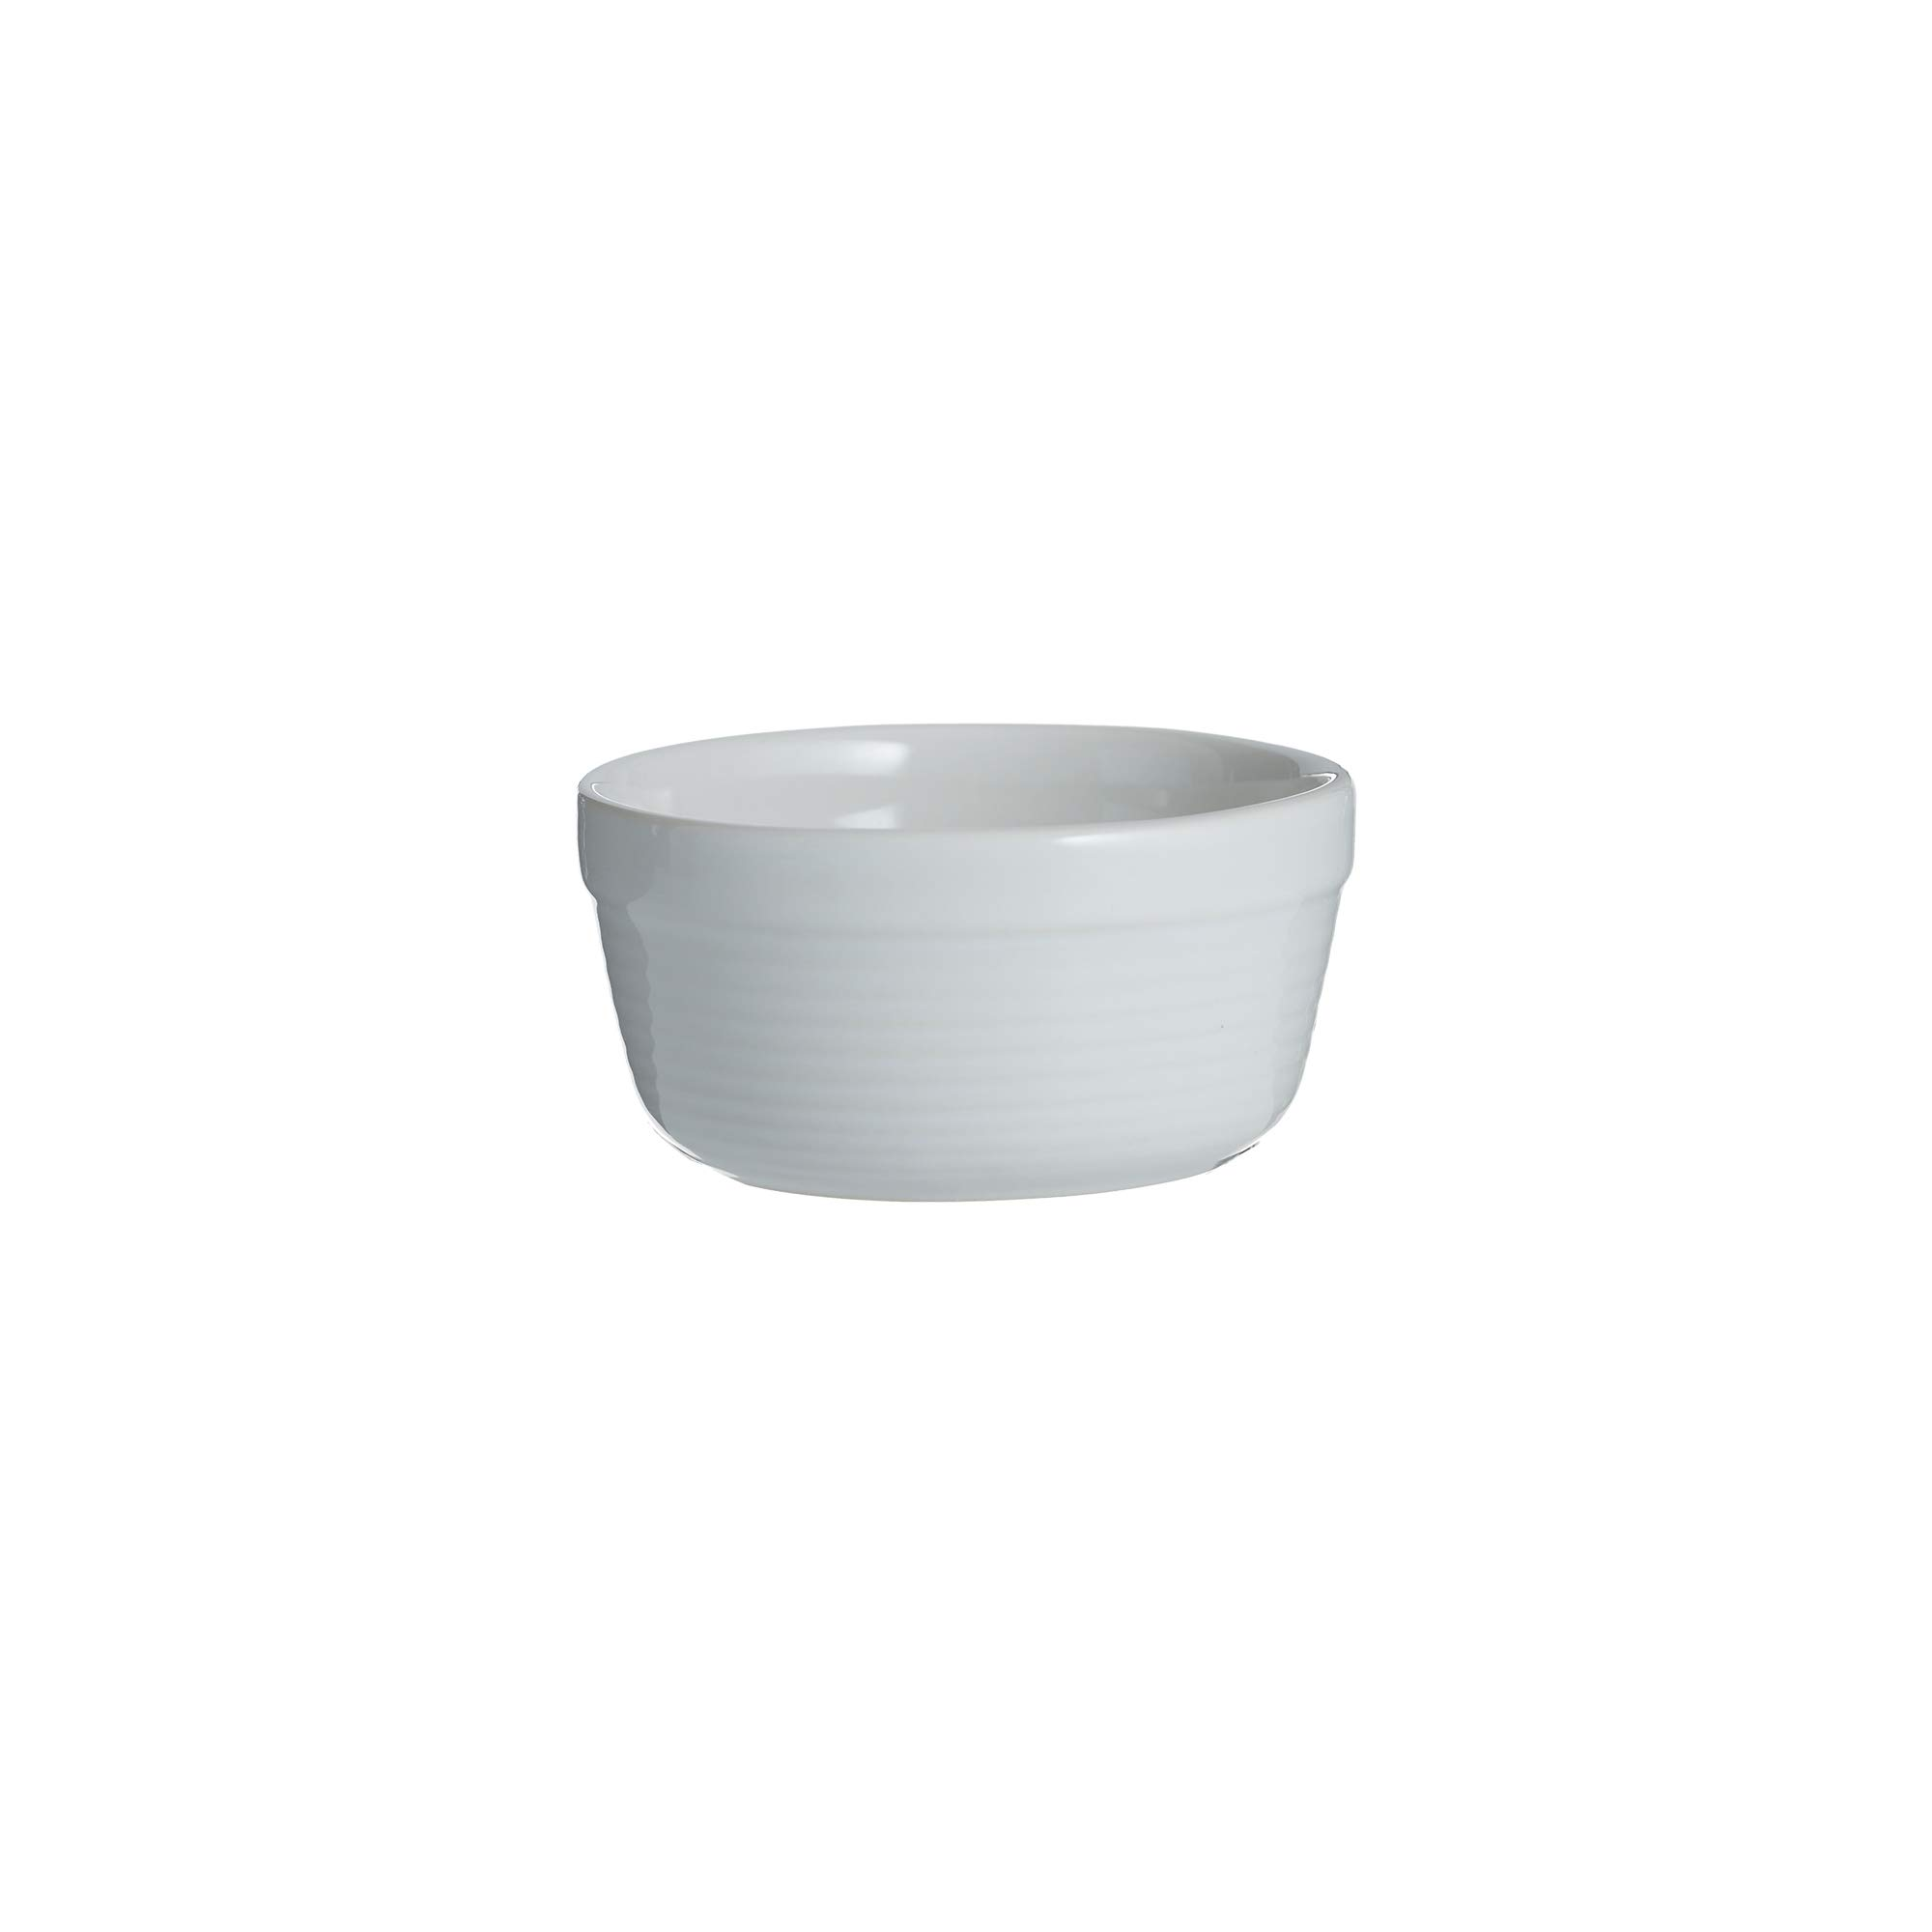 Mason Cash 2002.097 William Mason 10cm White Ramekin Dish, Stoneware